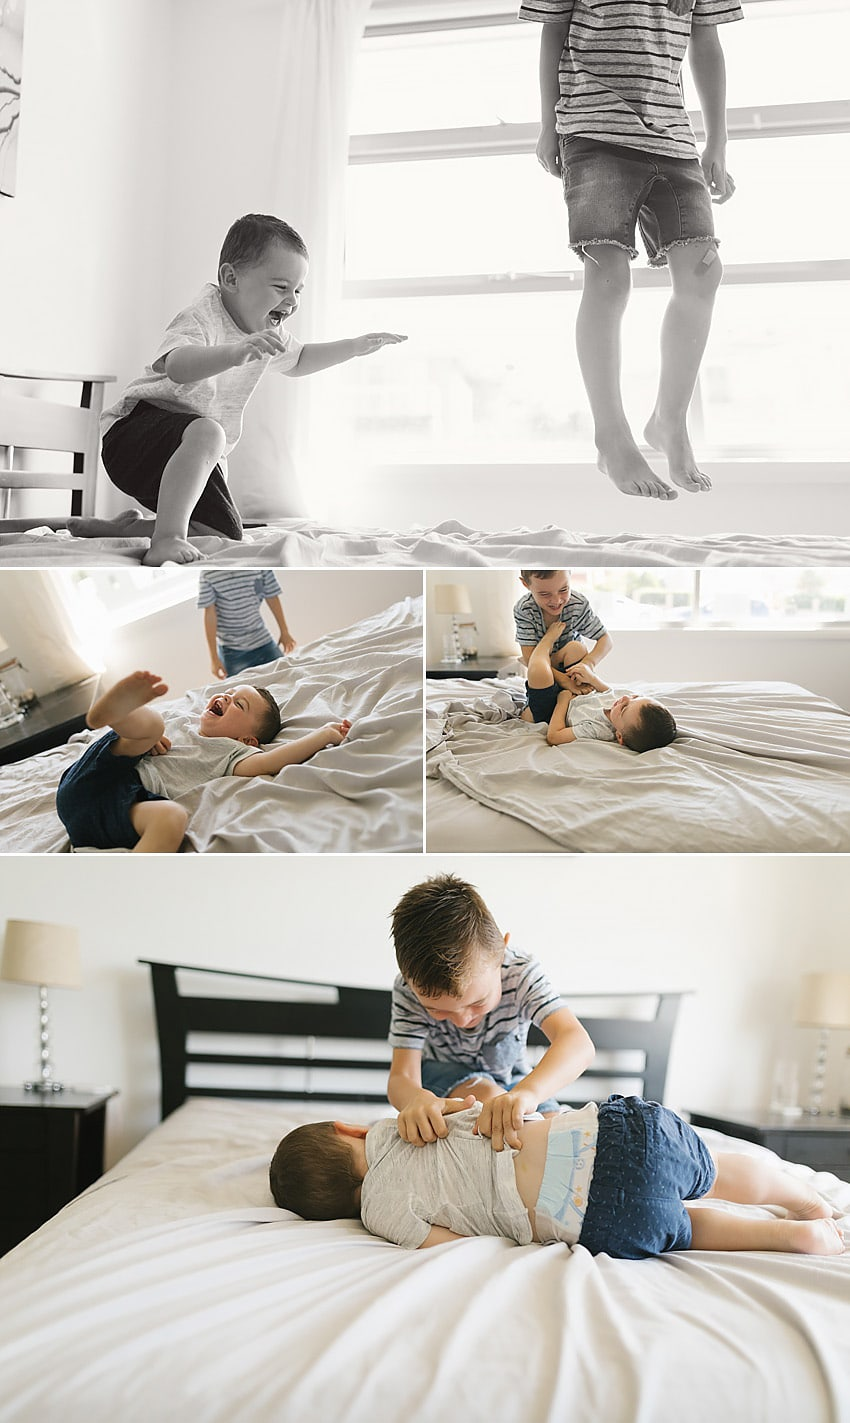 Fun-in-home-lifestyle-family-photography-sutherland-shire-sydney